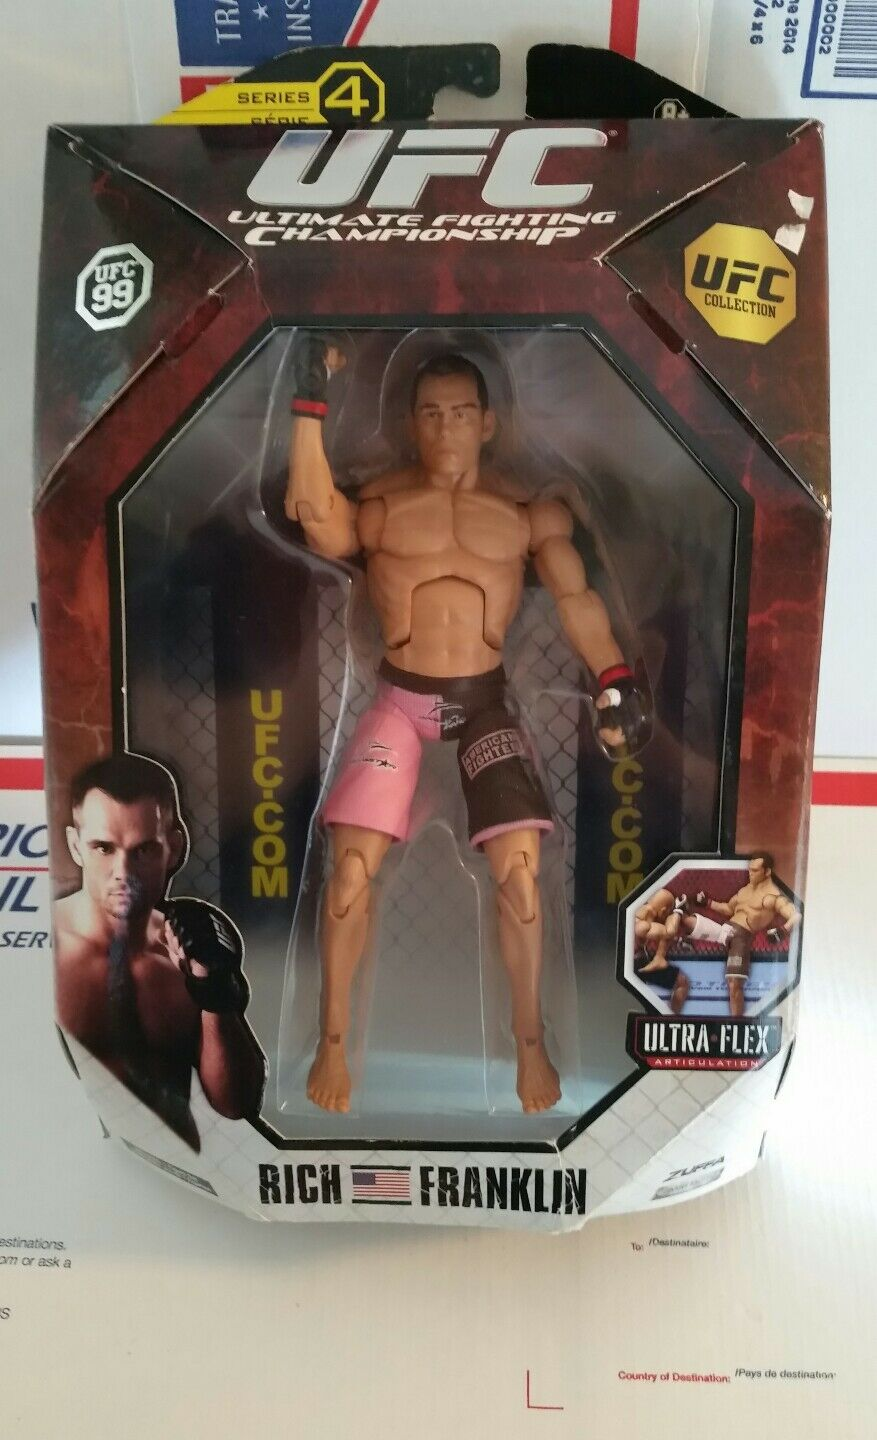 RICH FRANKLIN UFC Ultimate Fighting JakkS Series 4 Action  figure WITH BOX